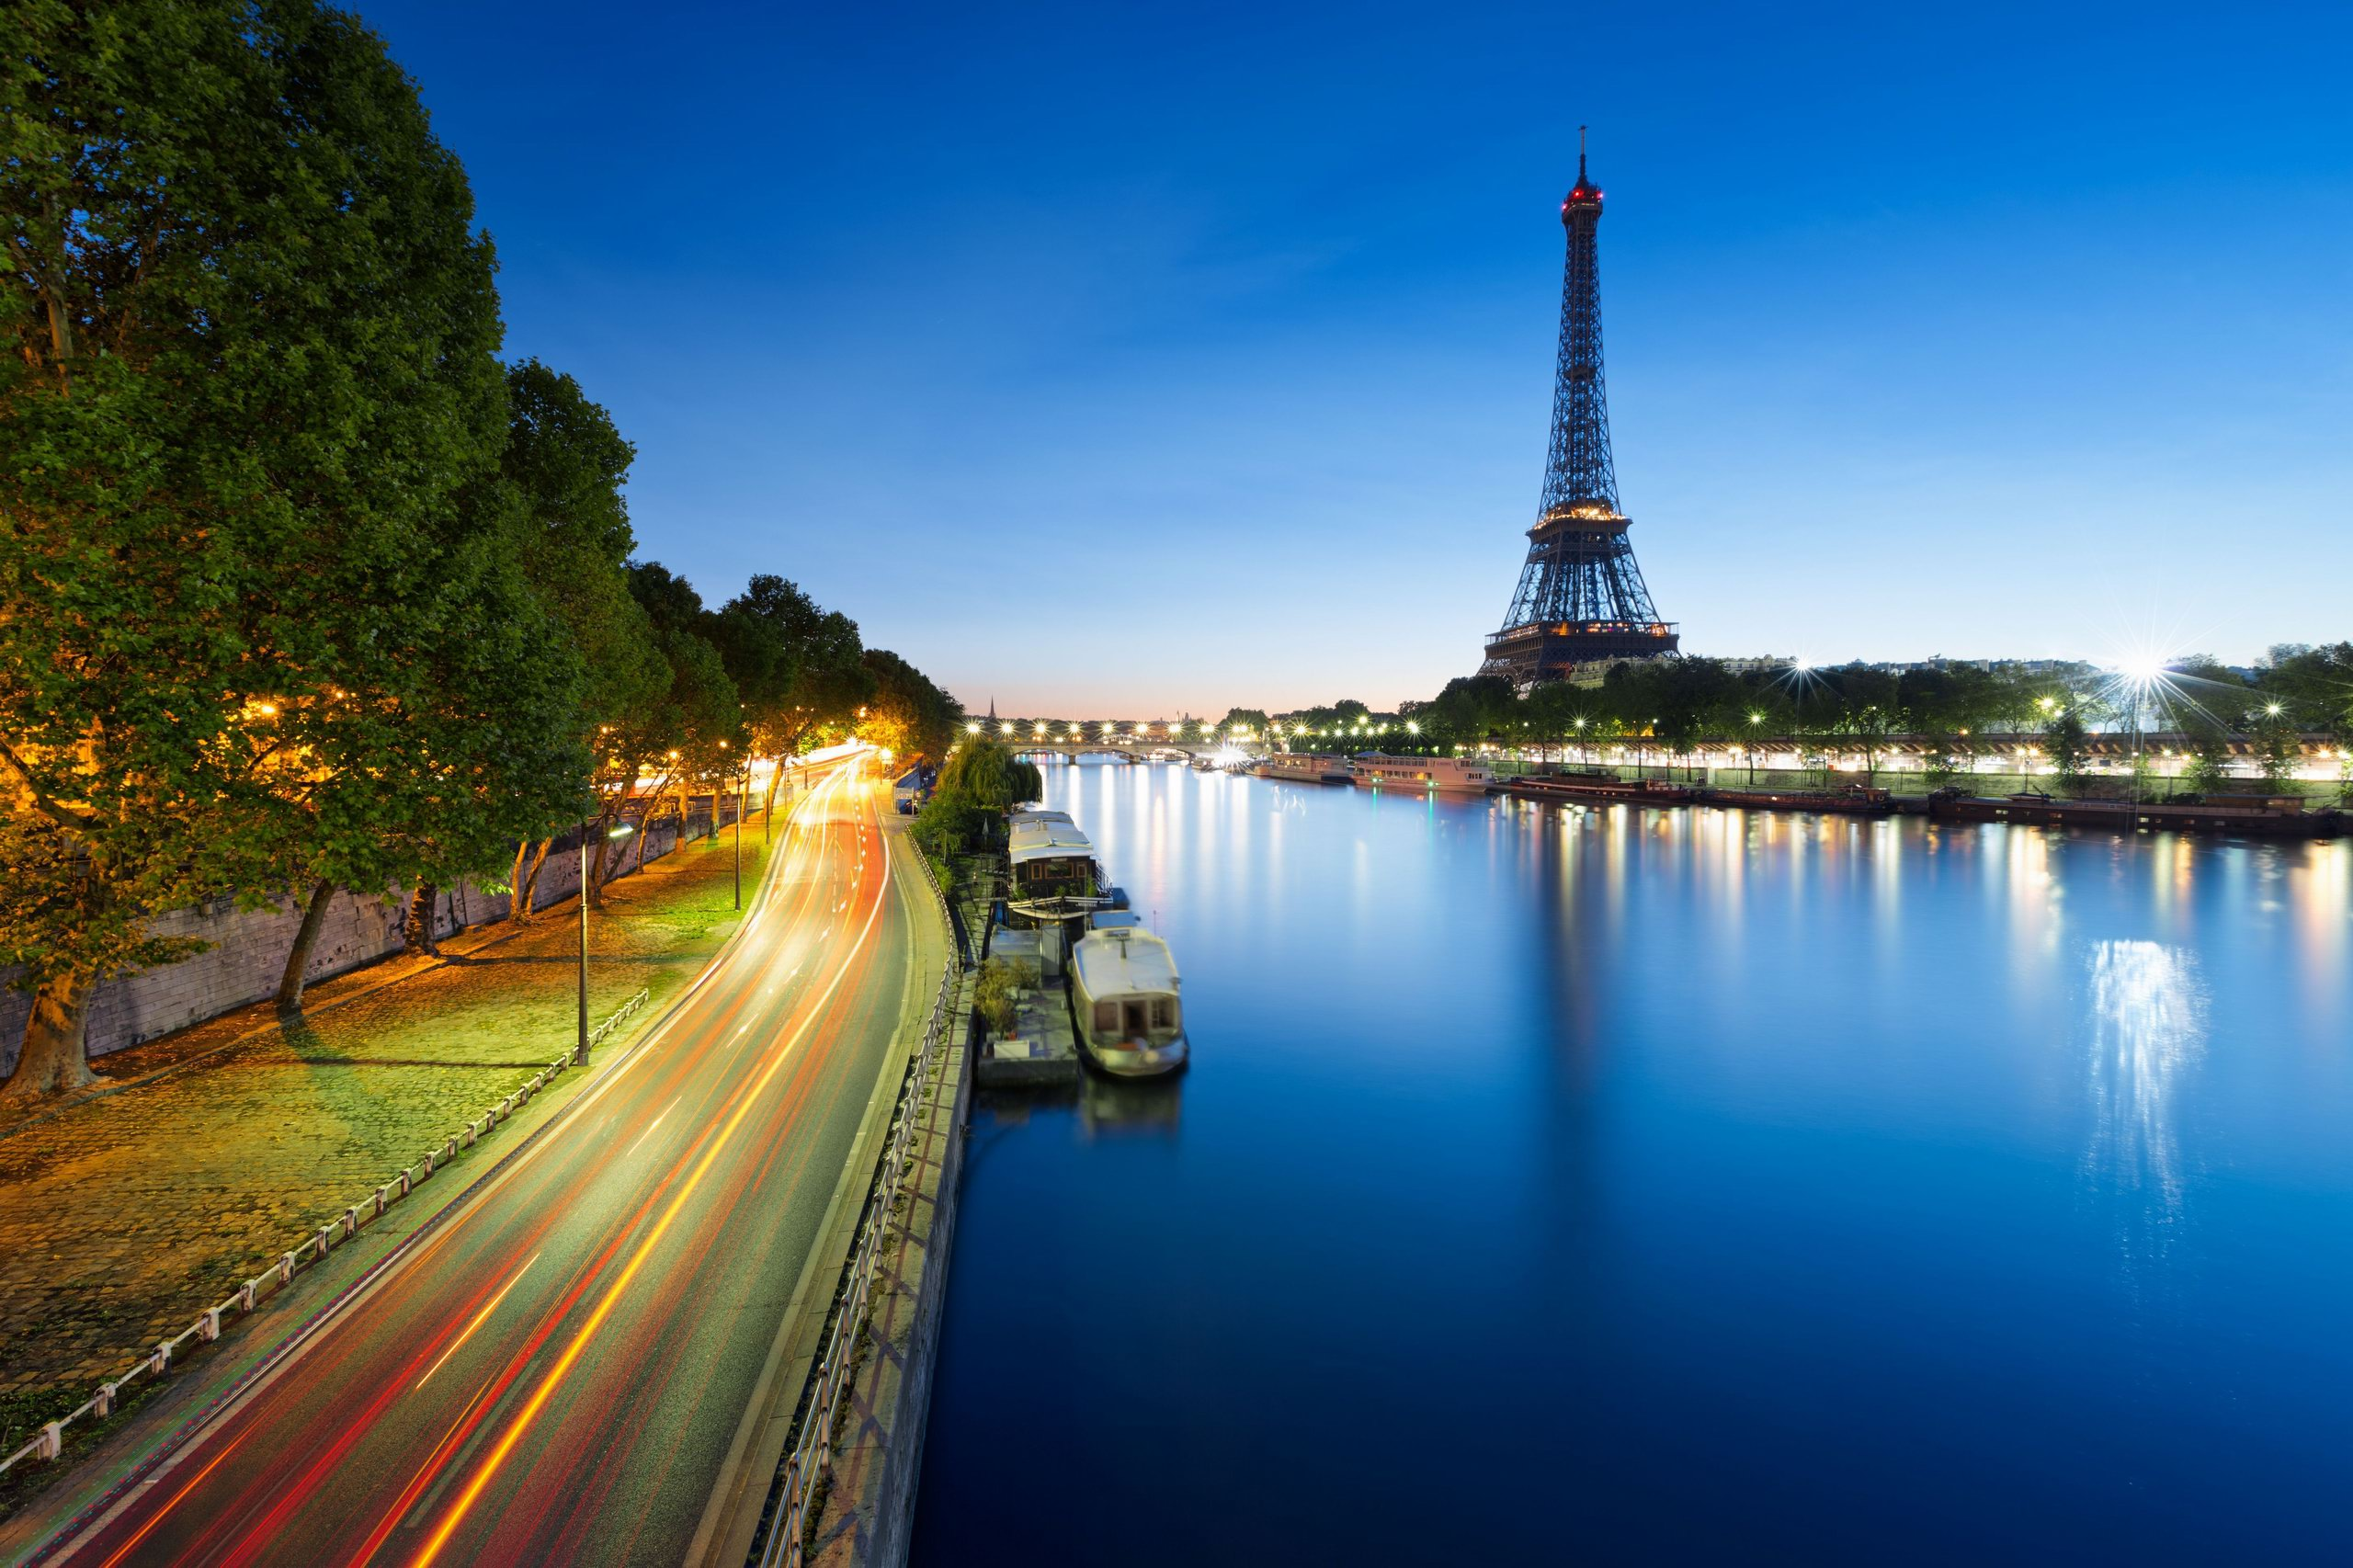 France Paris Eiffel Tower River Sung Boat Trees Road Exposure Hd Wallpaper Desktop Backgrounds